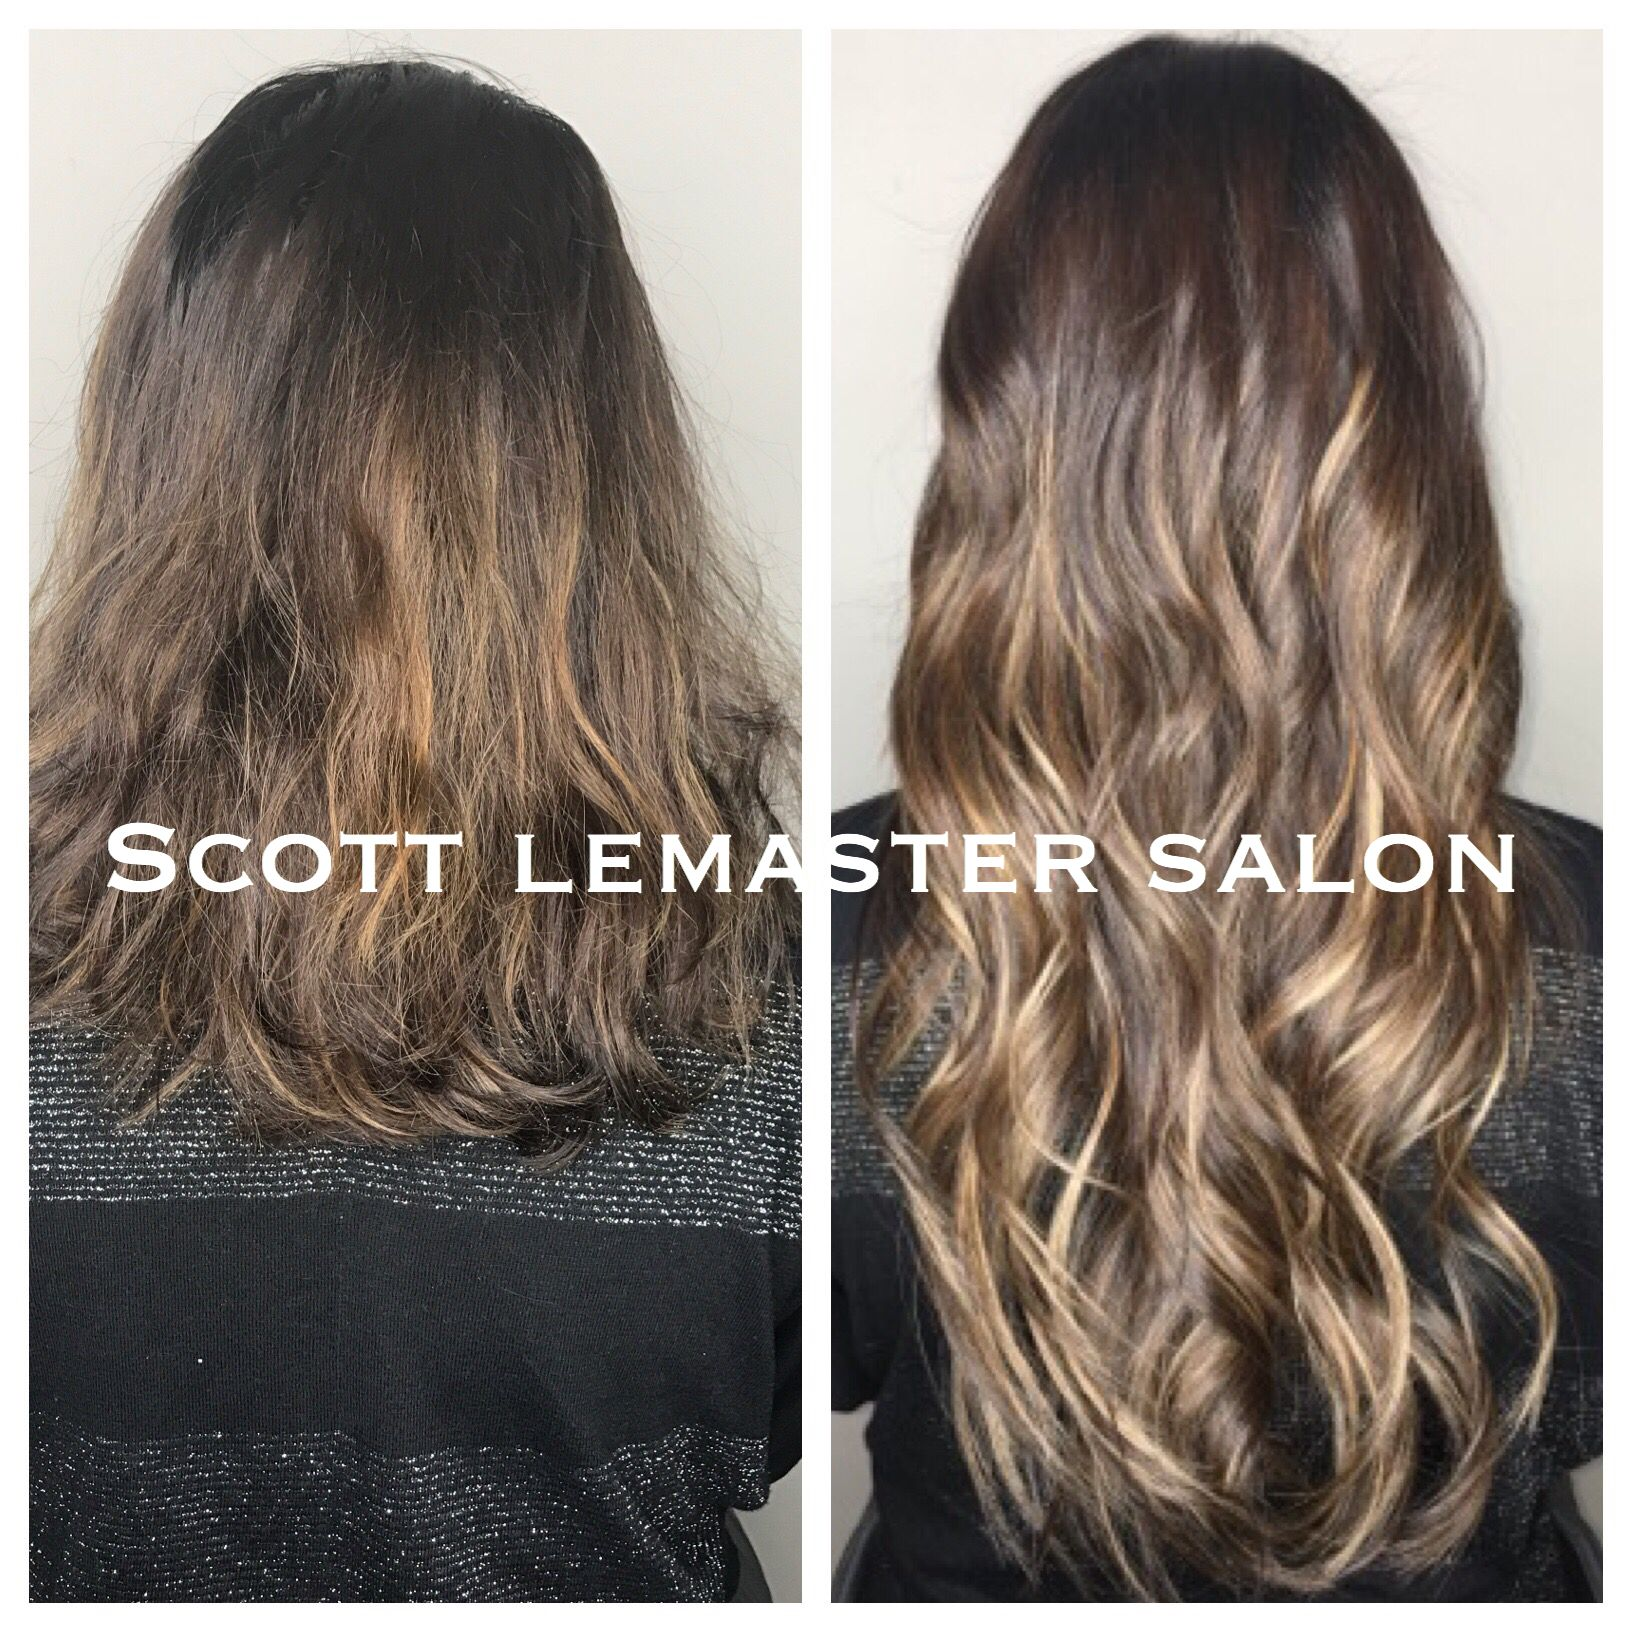 Vomor Hair Extensions Can Add Color And Length While Your Stuck